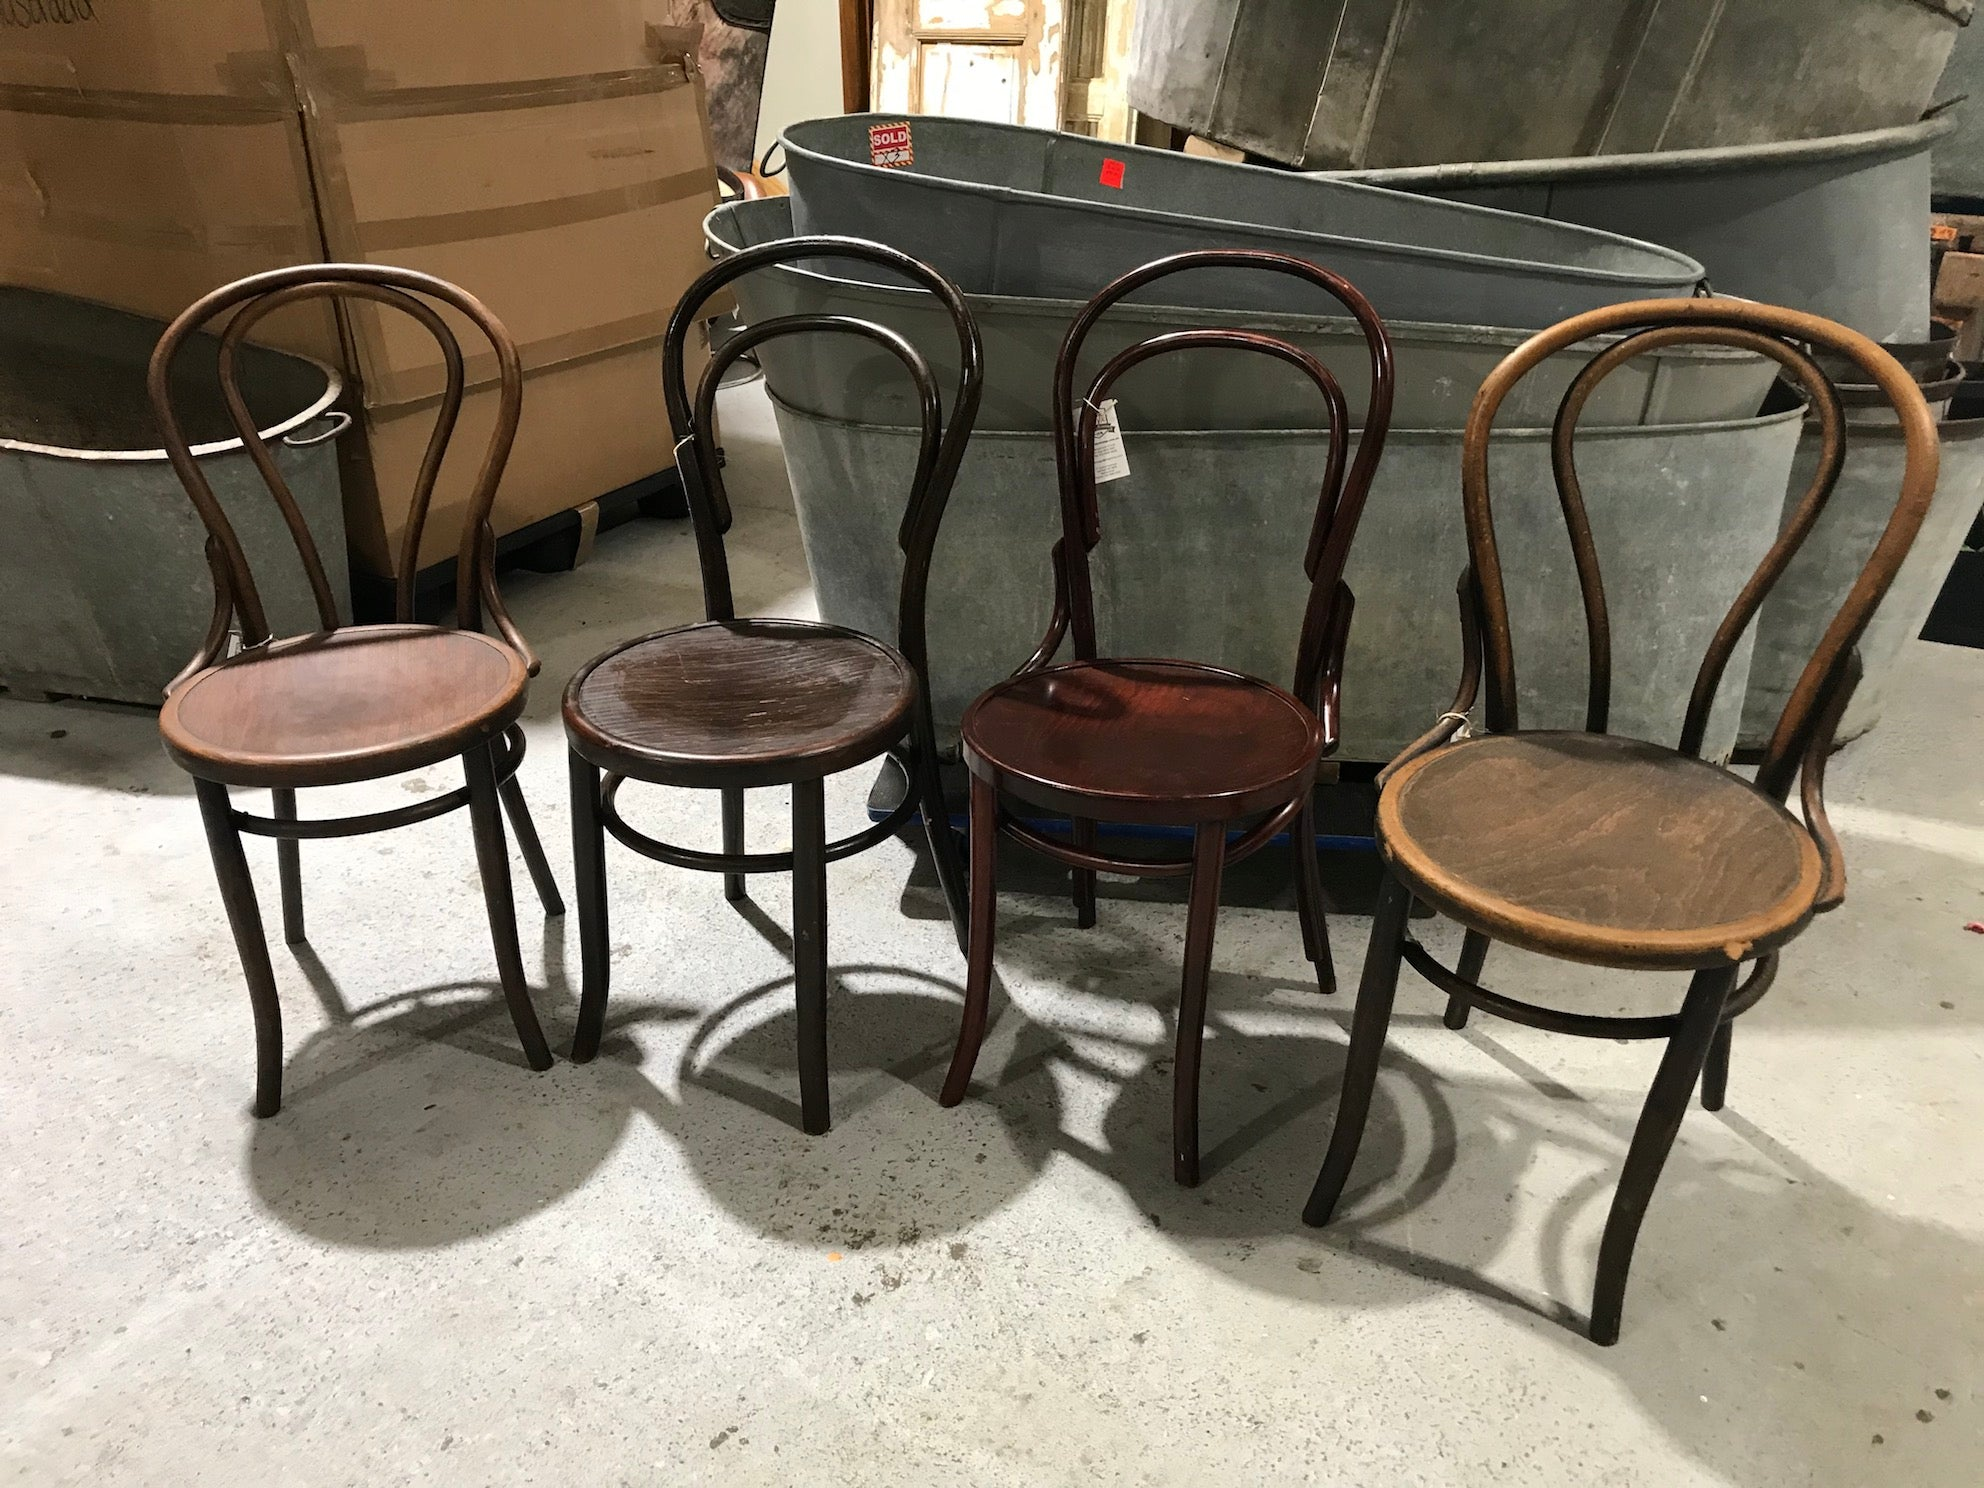 Vintage industrial Czech 1930s Thonet chair  x 4 # 2634 selling  as a set